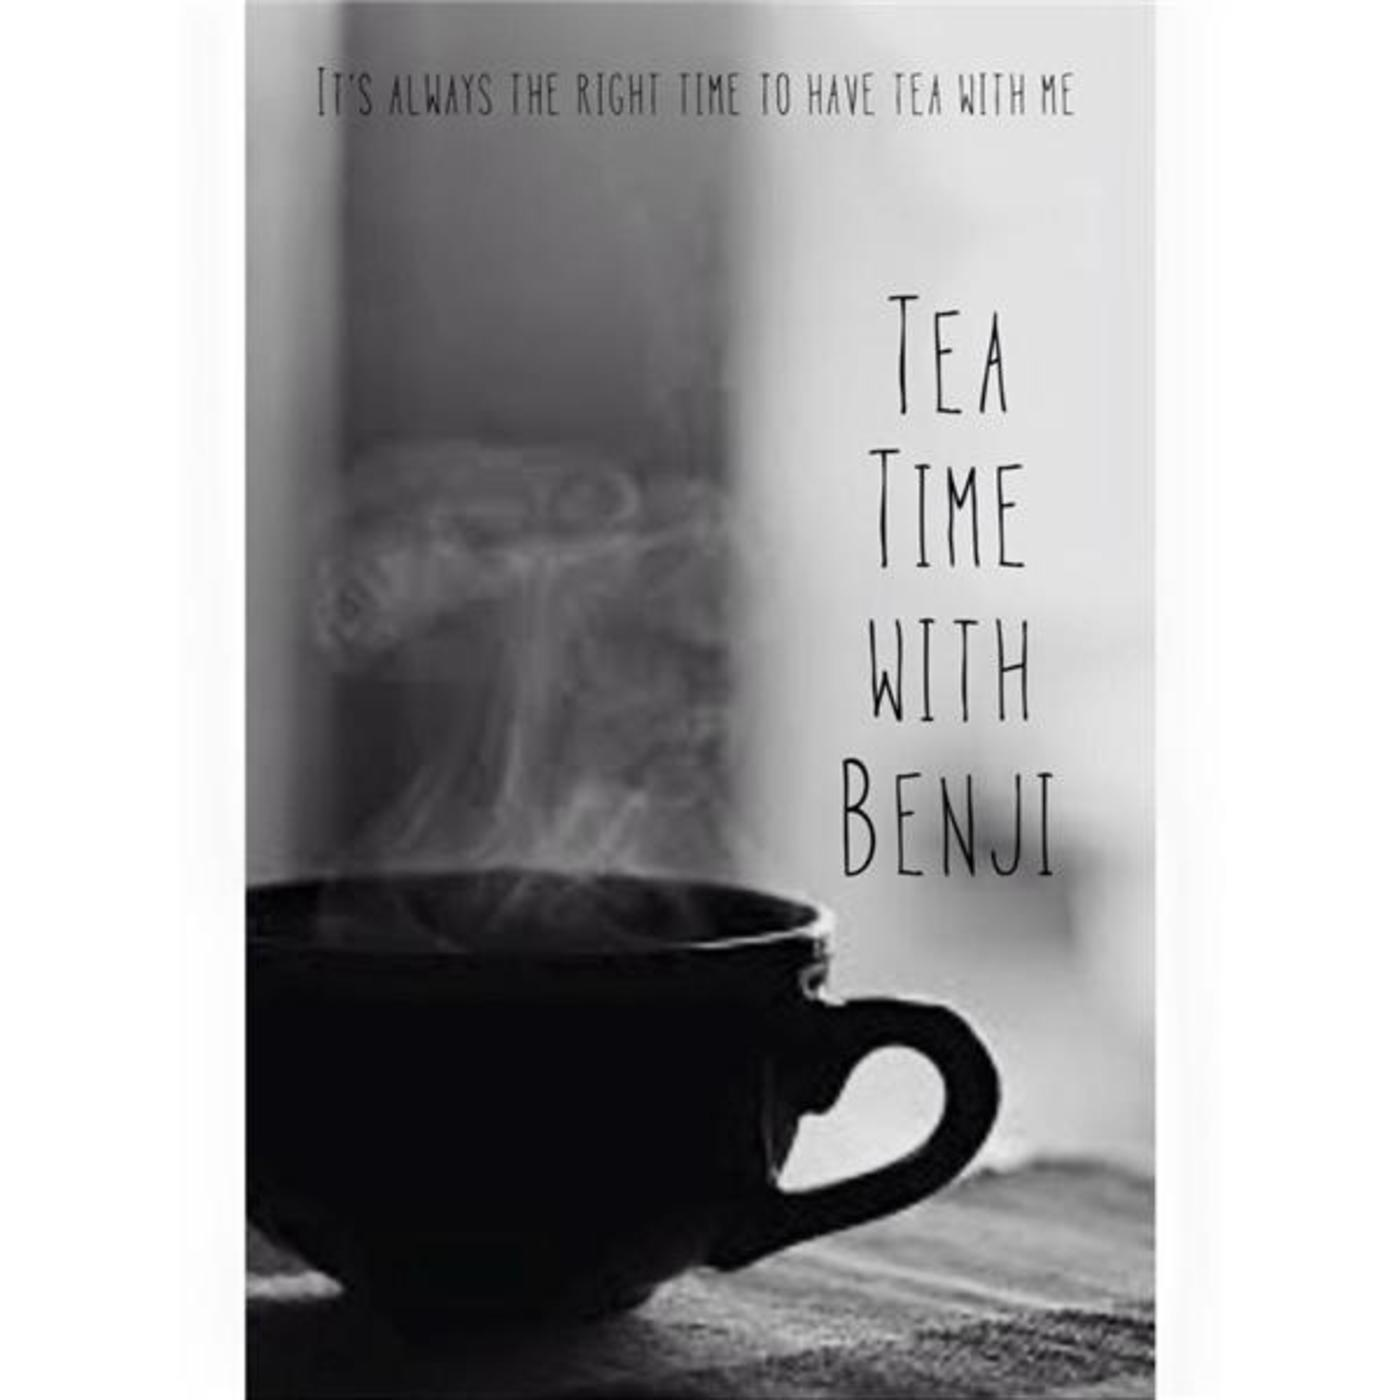 Tea Time with Benji